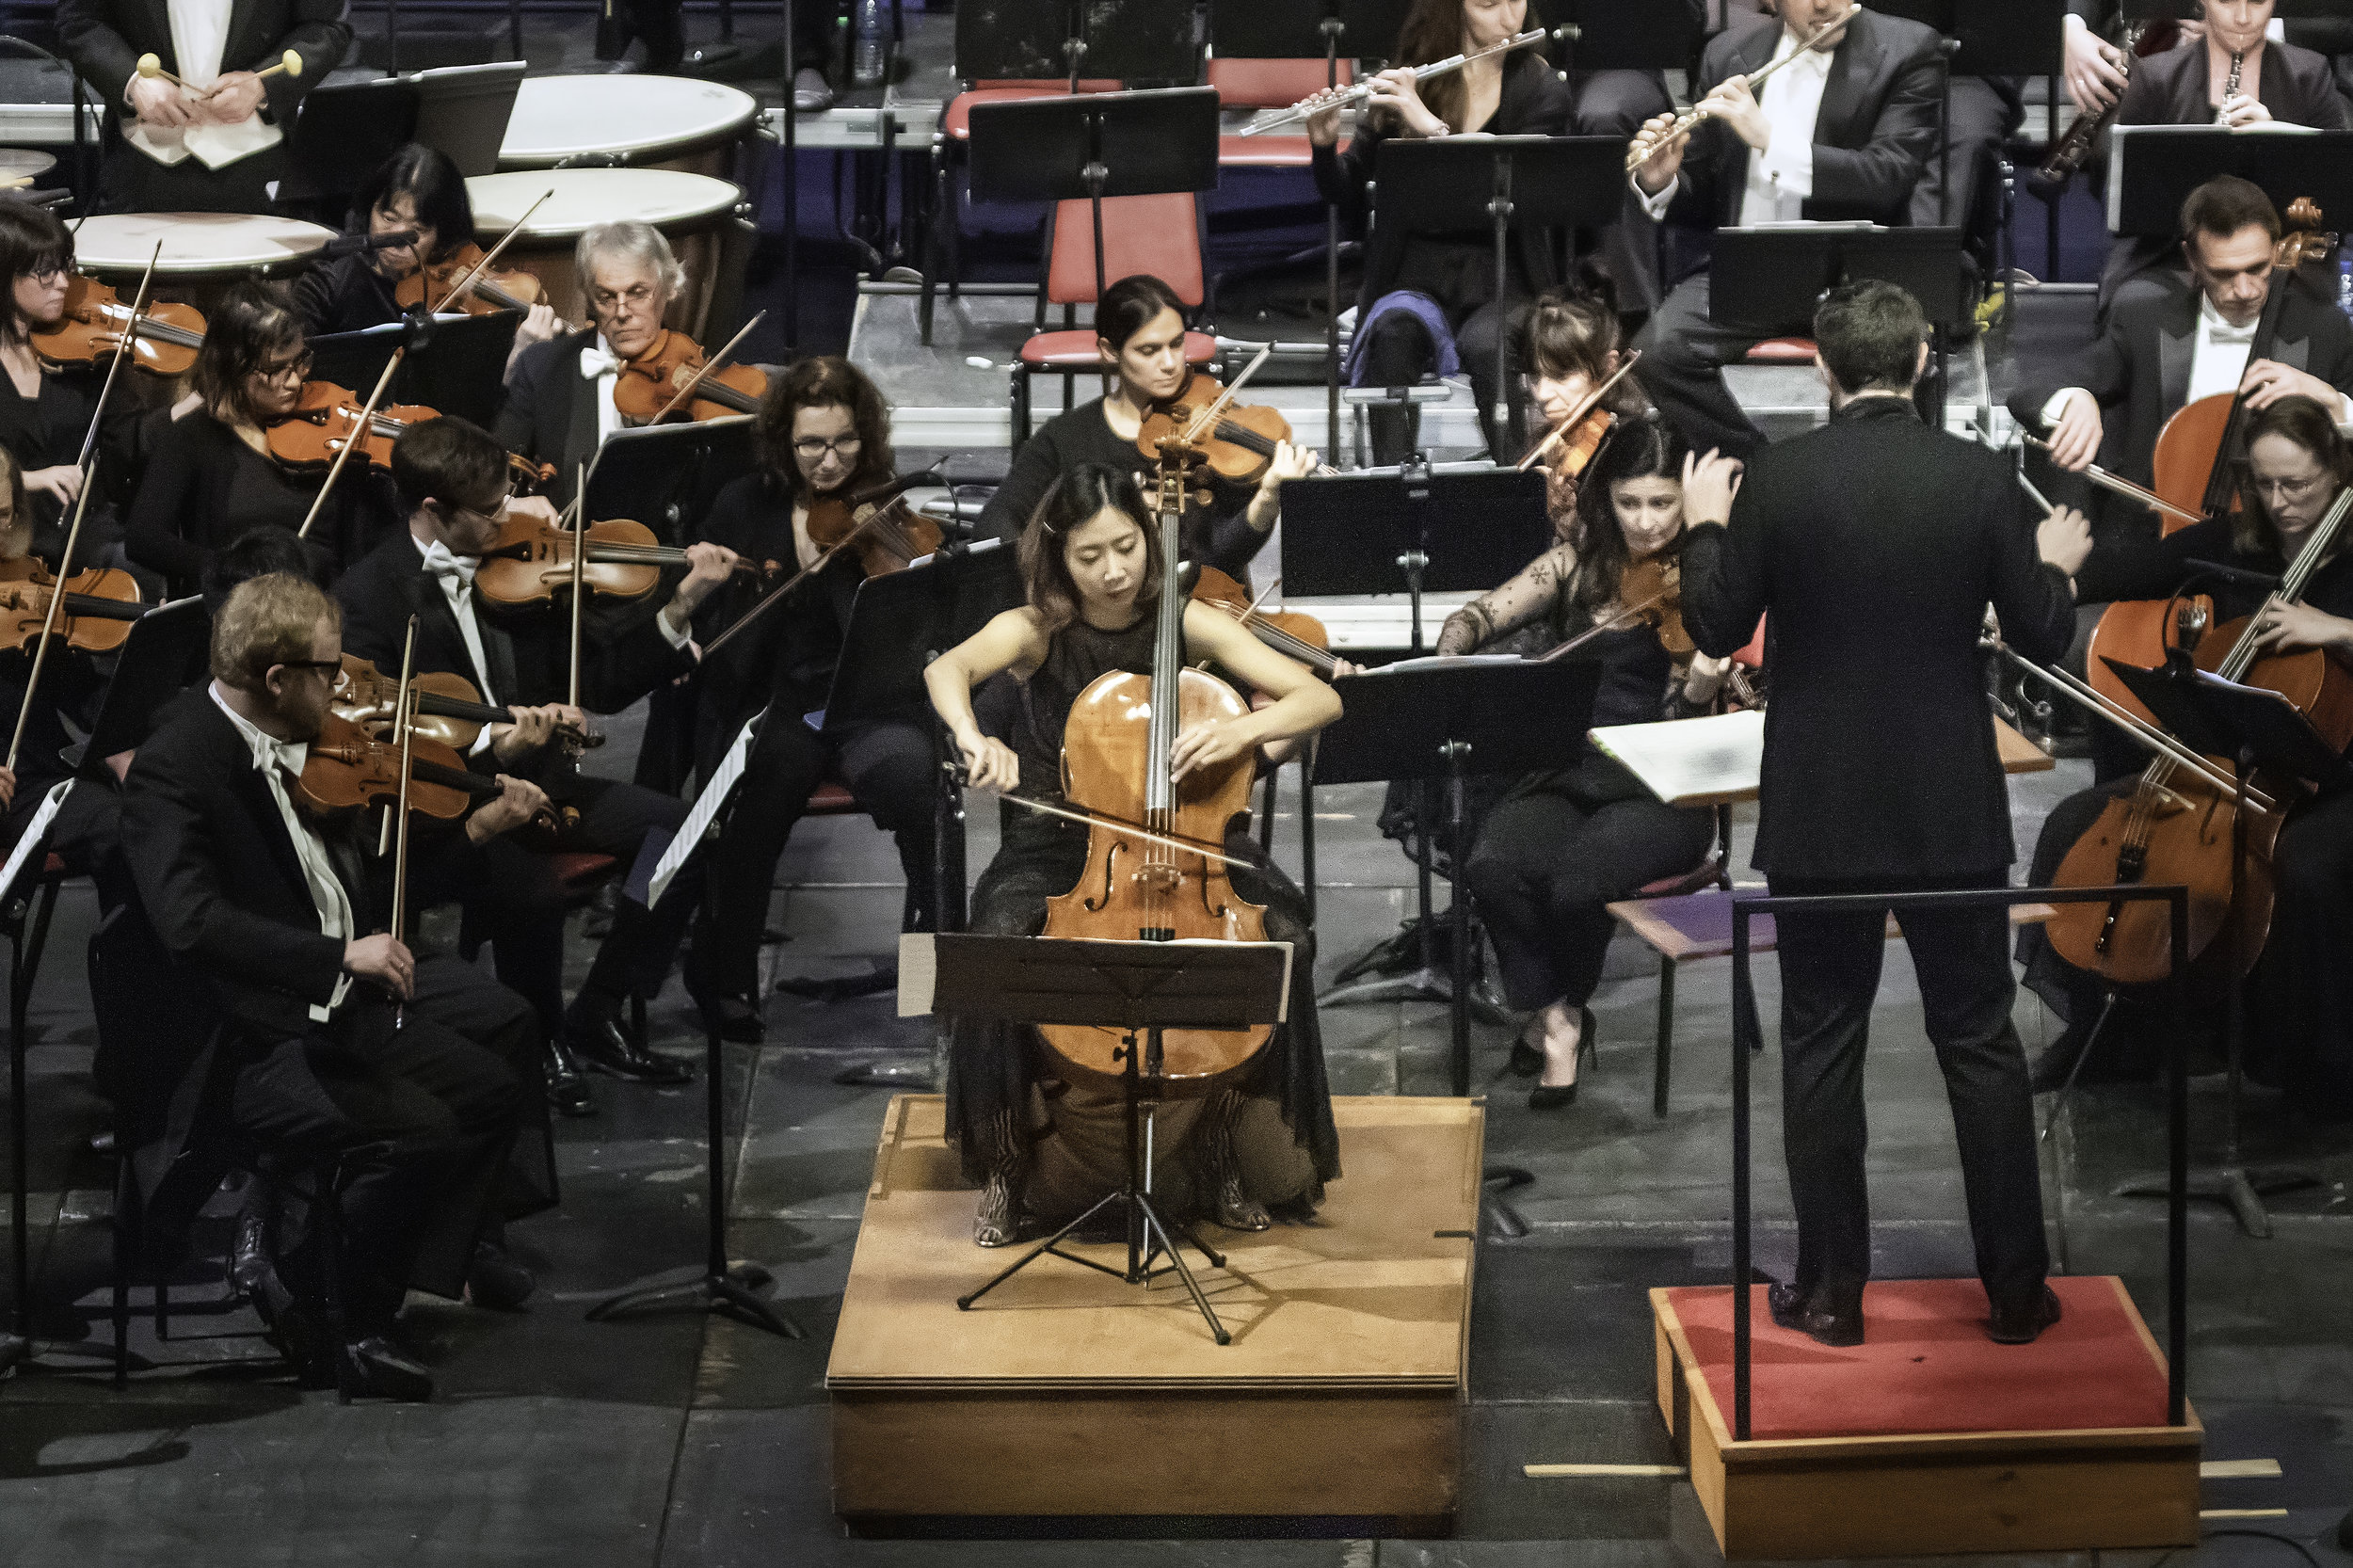 """Christine J. Lee performs Andrea Tarrodi's cello concerto """"Highlands"""" with the New Bedford Symphony Orchestra. Yaniv Dinur conducts. Richard Van Inwegen photograph"""